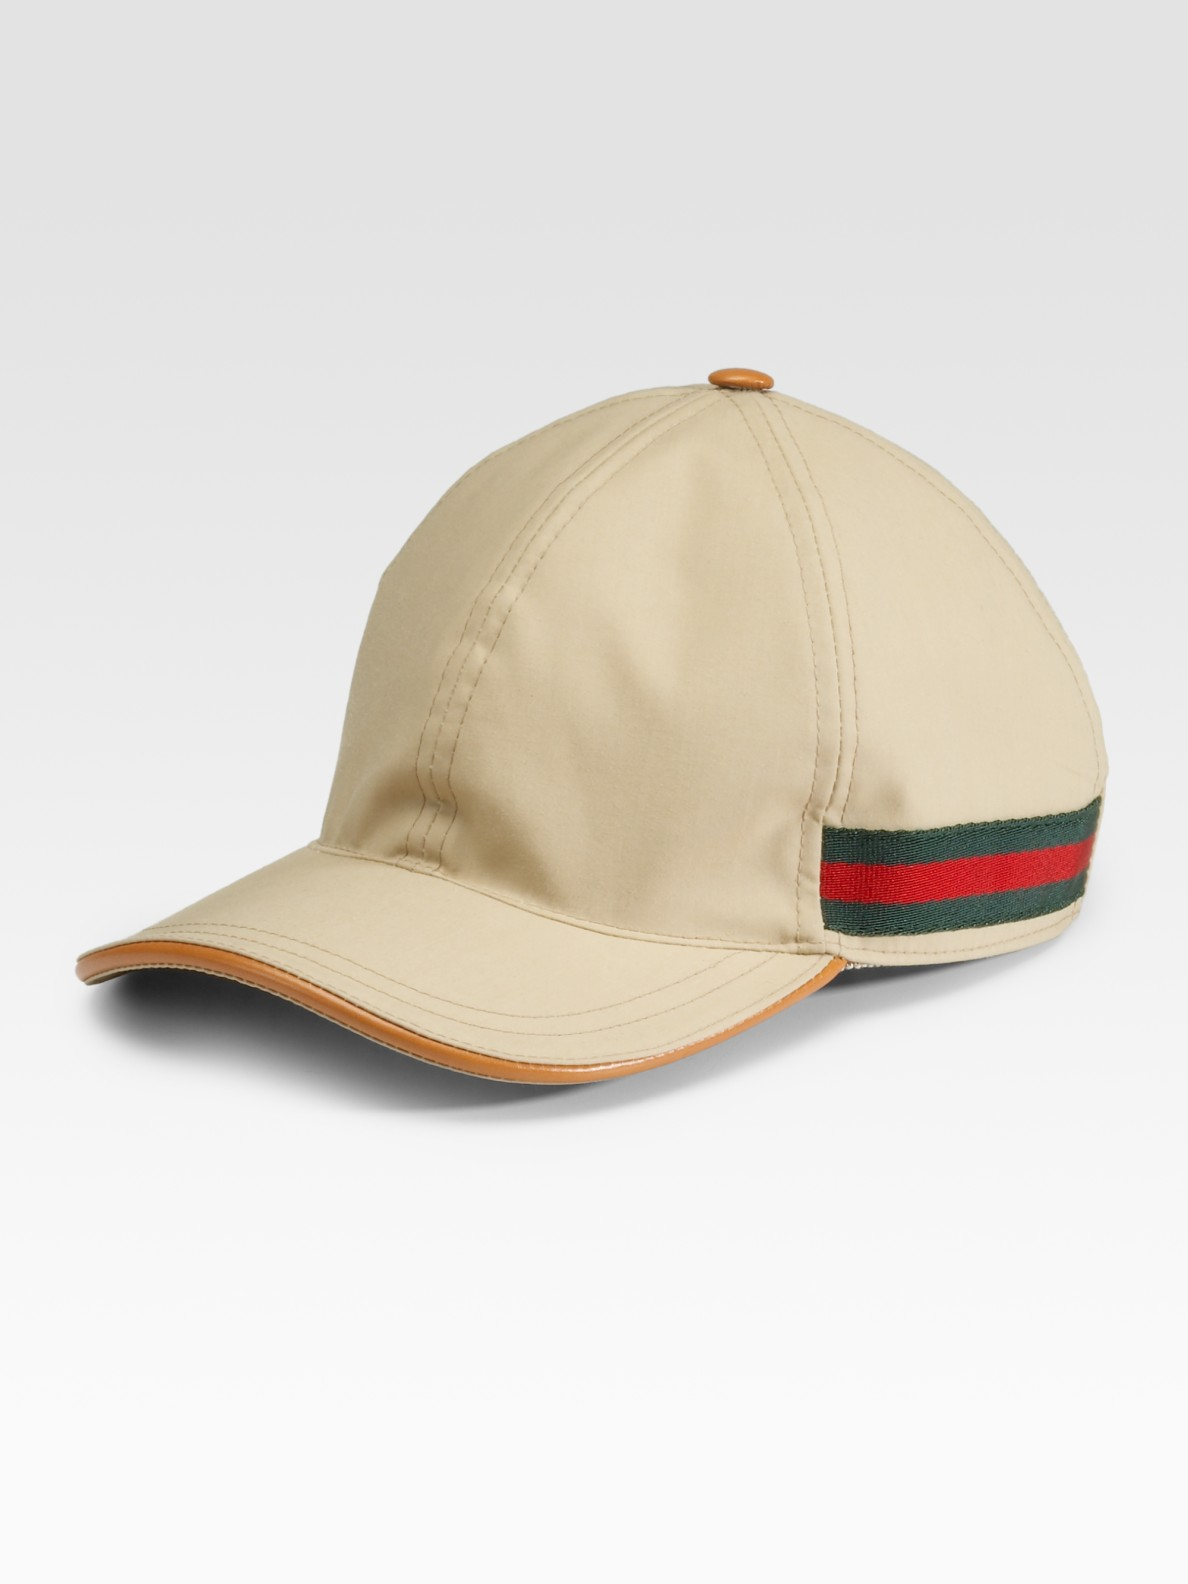 12d65405d3a51 Gucci Baseball Hat in Natural for Men - Lyst